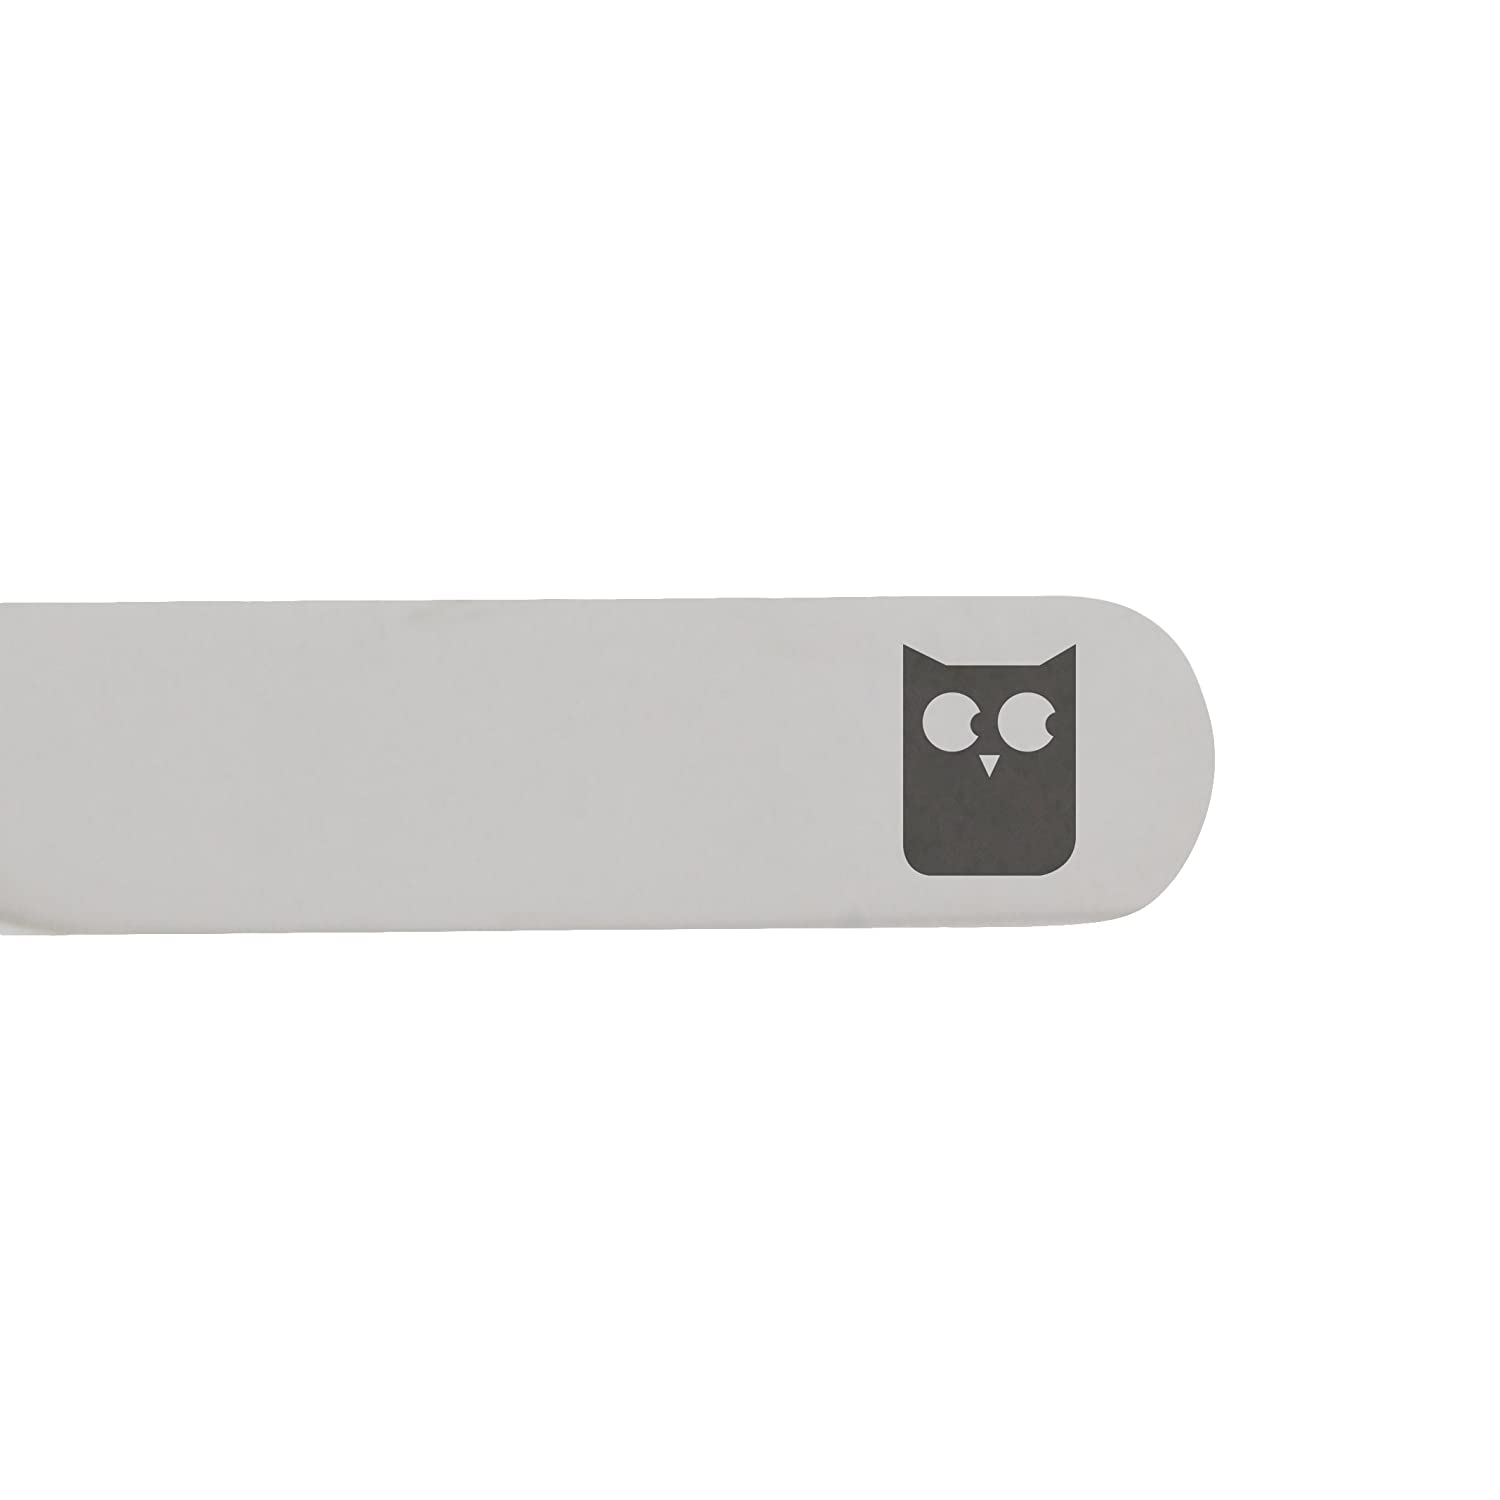 2.5 Inch Metal Collar Stiffeners Made In USA MODERN GOODS SHOP Stainless Steel Collar Stays With Laser Engraved Cute Owl Design